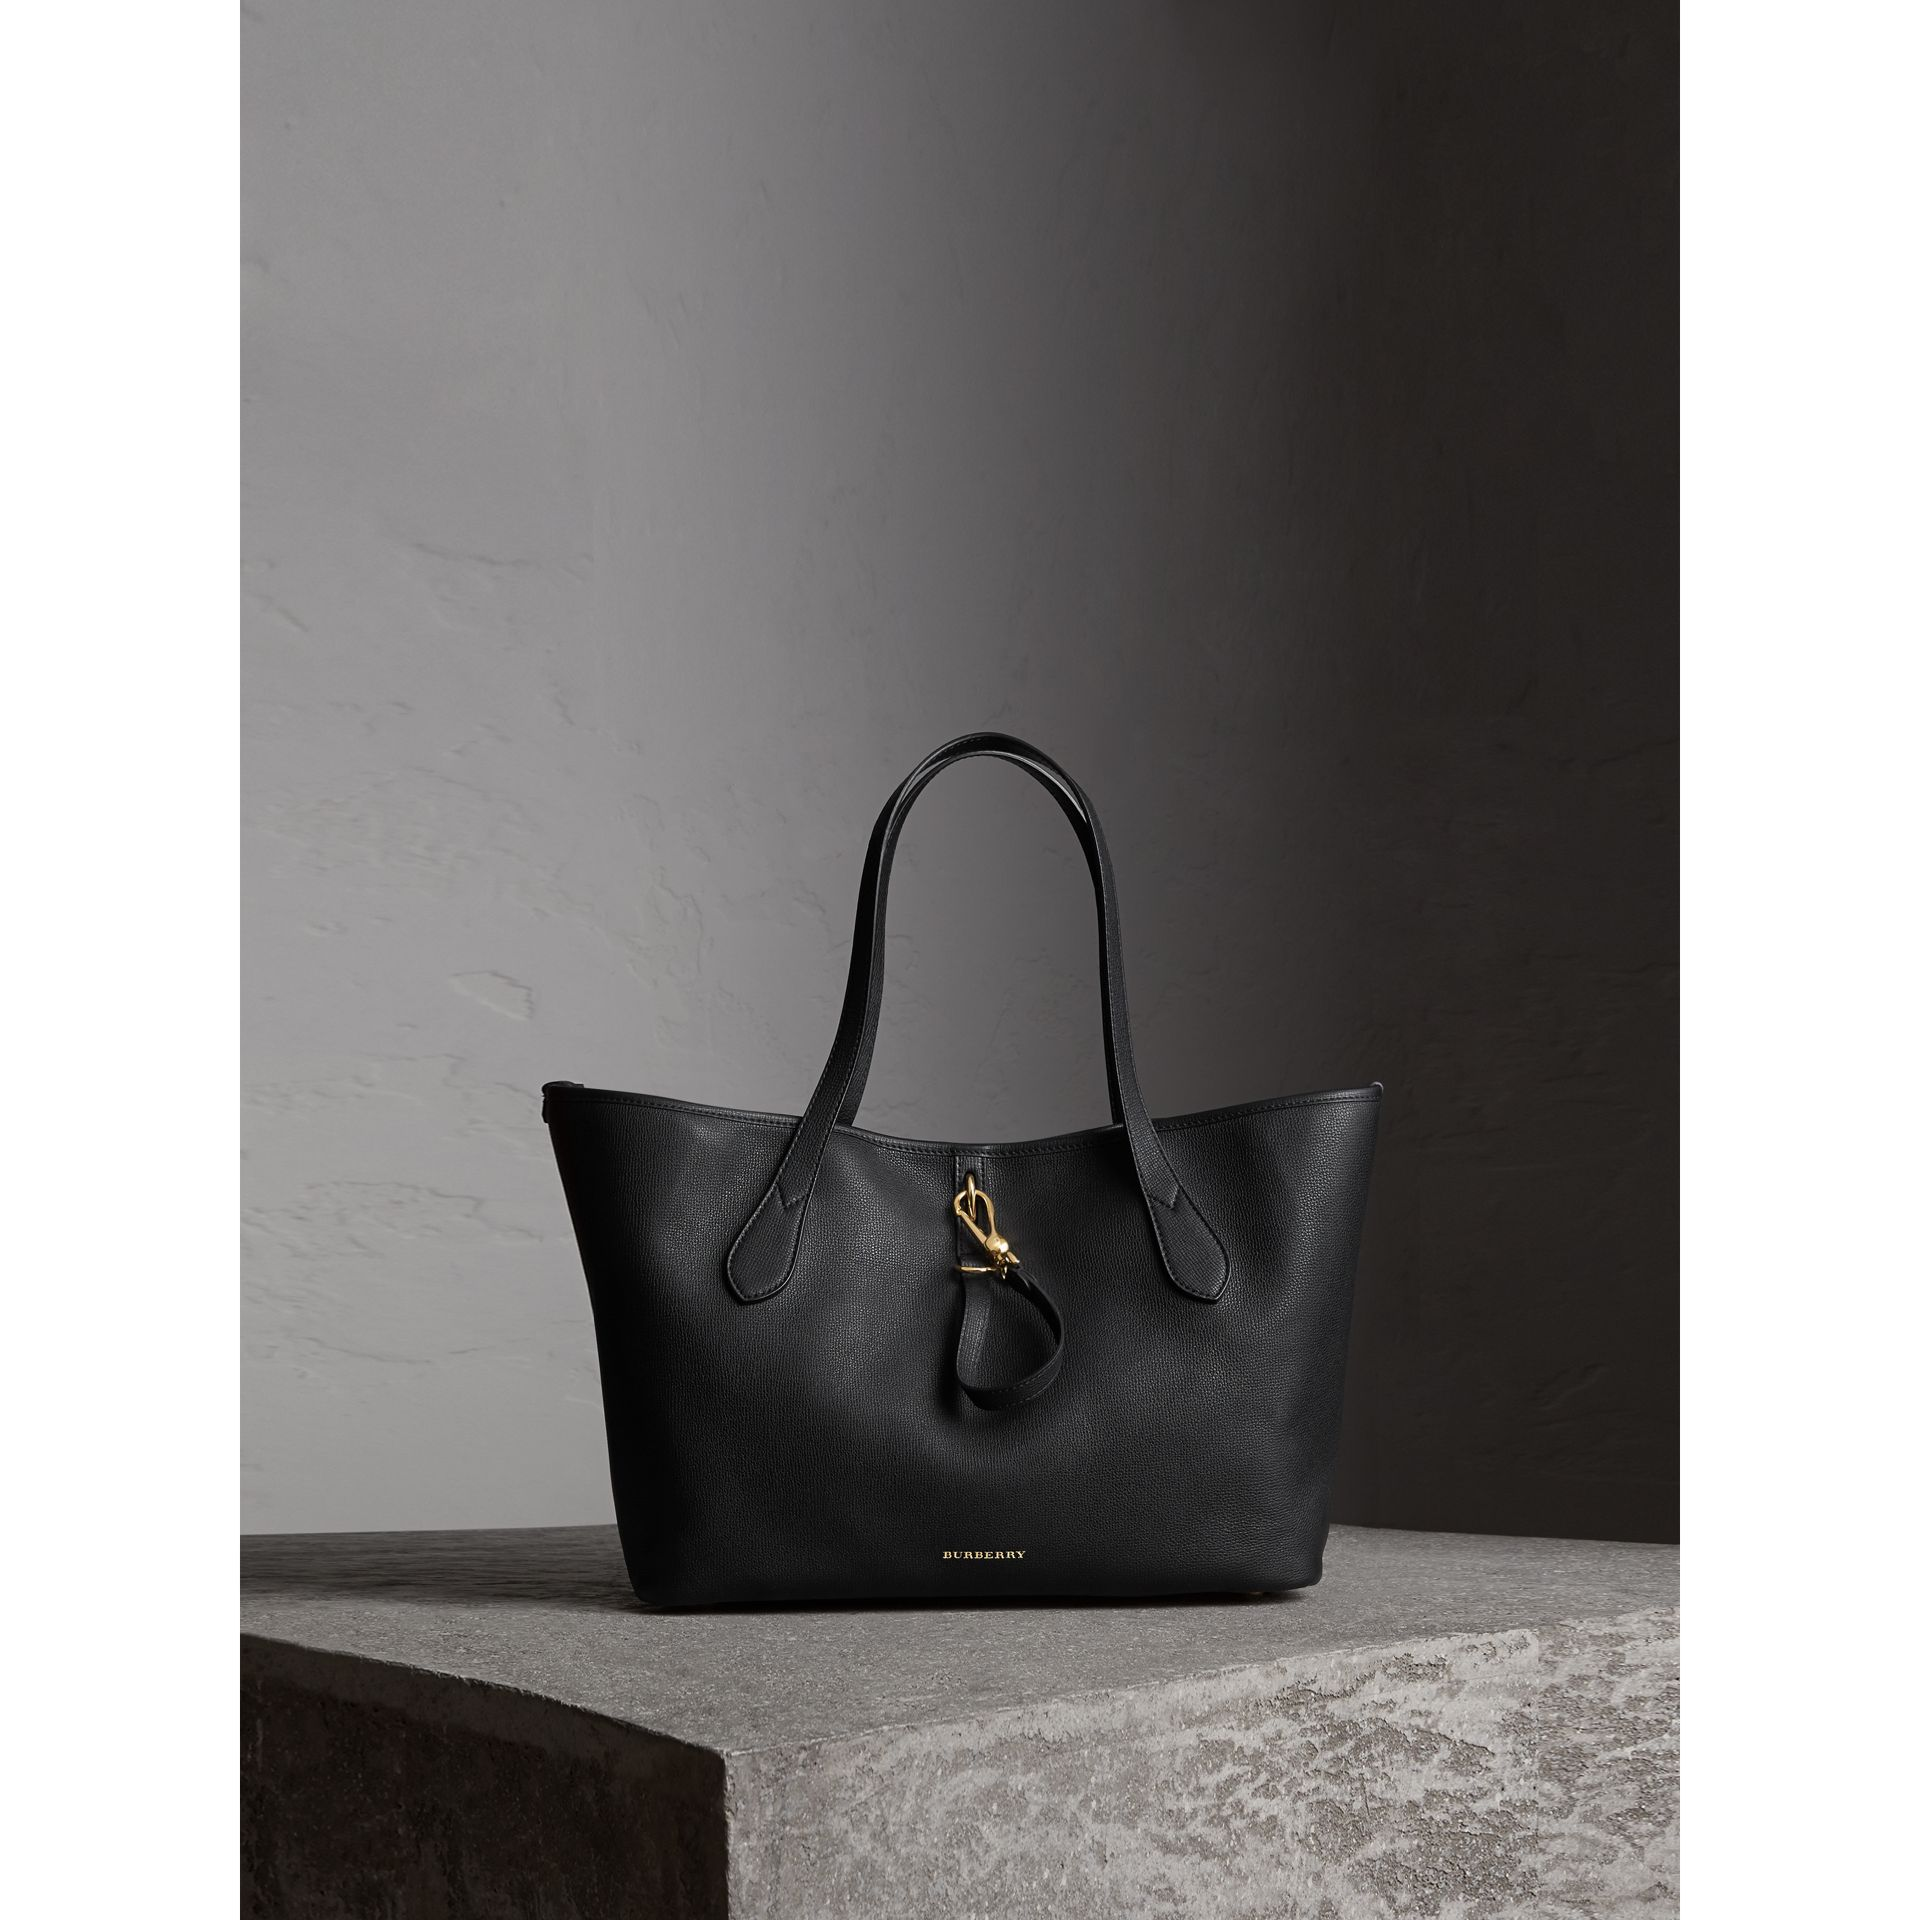 Medium Grainy Leather Tote Bag in Black - Women | Burberry - gallery image 1